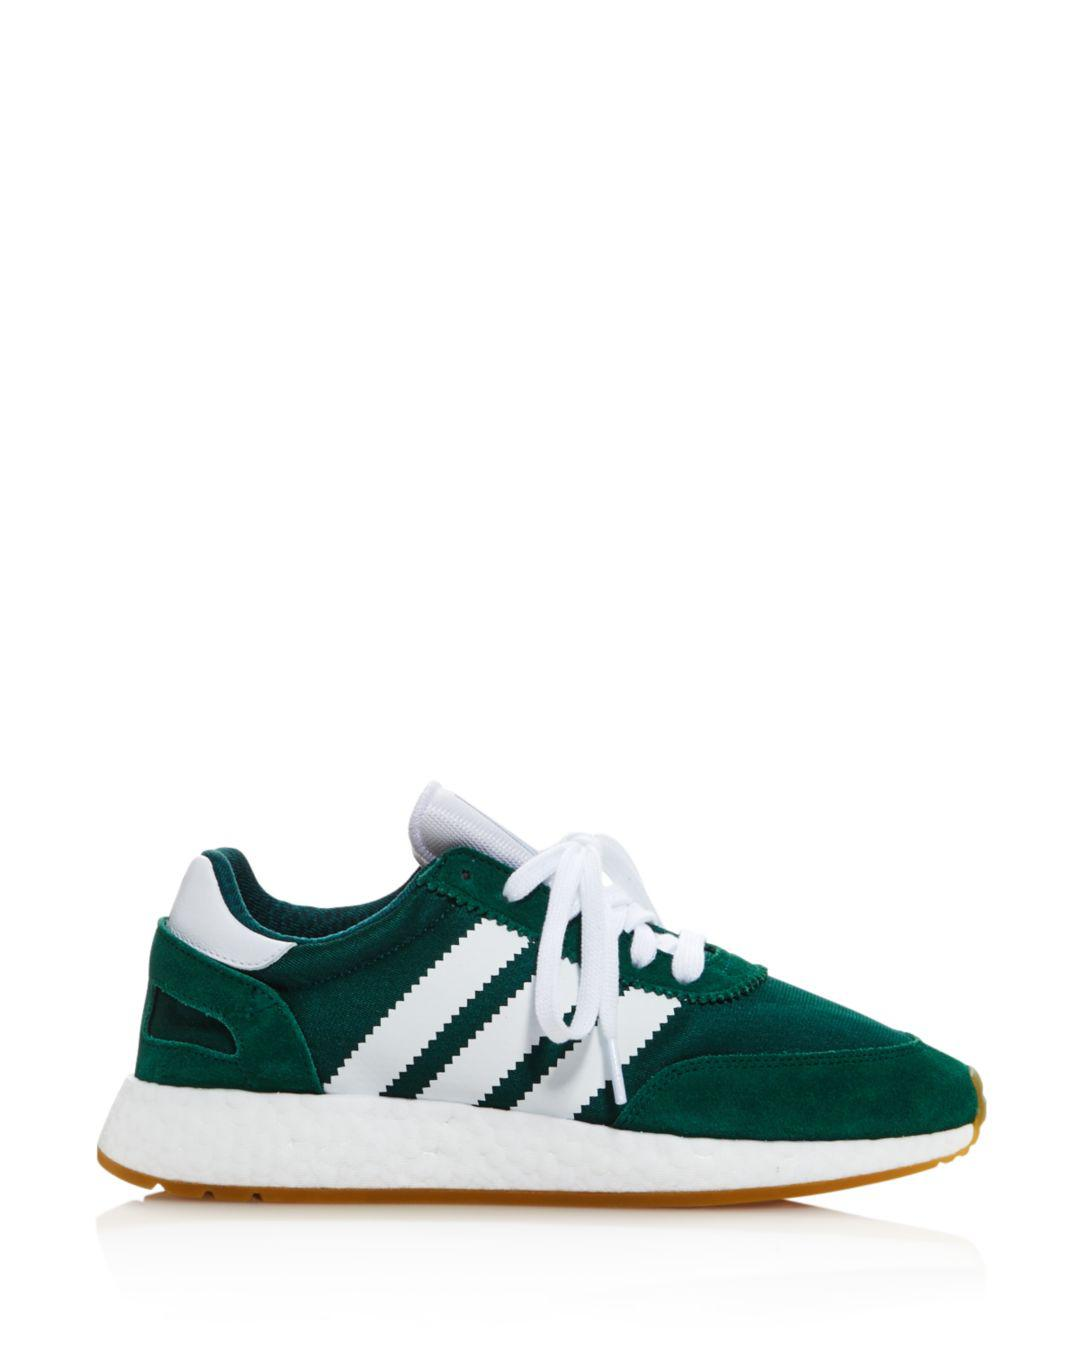 241e8a5623d Adidas Green 5923 I Women s Low Sneakers Lyst In Top Hdqx7W